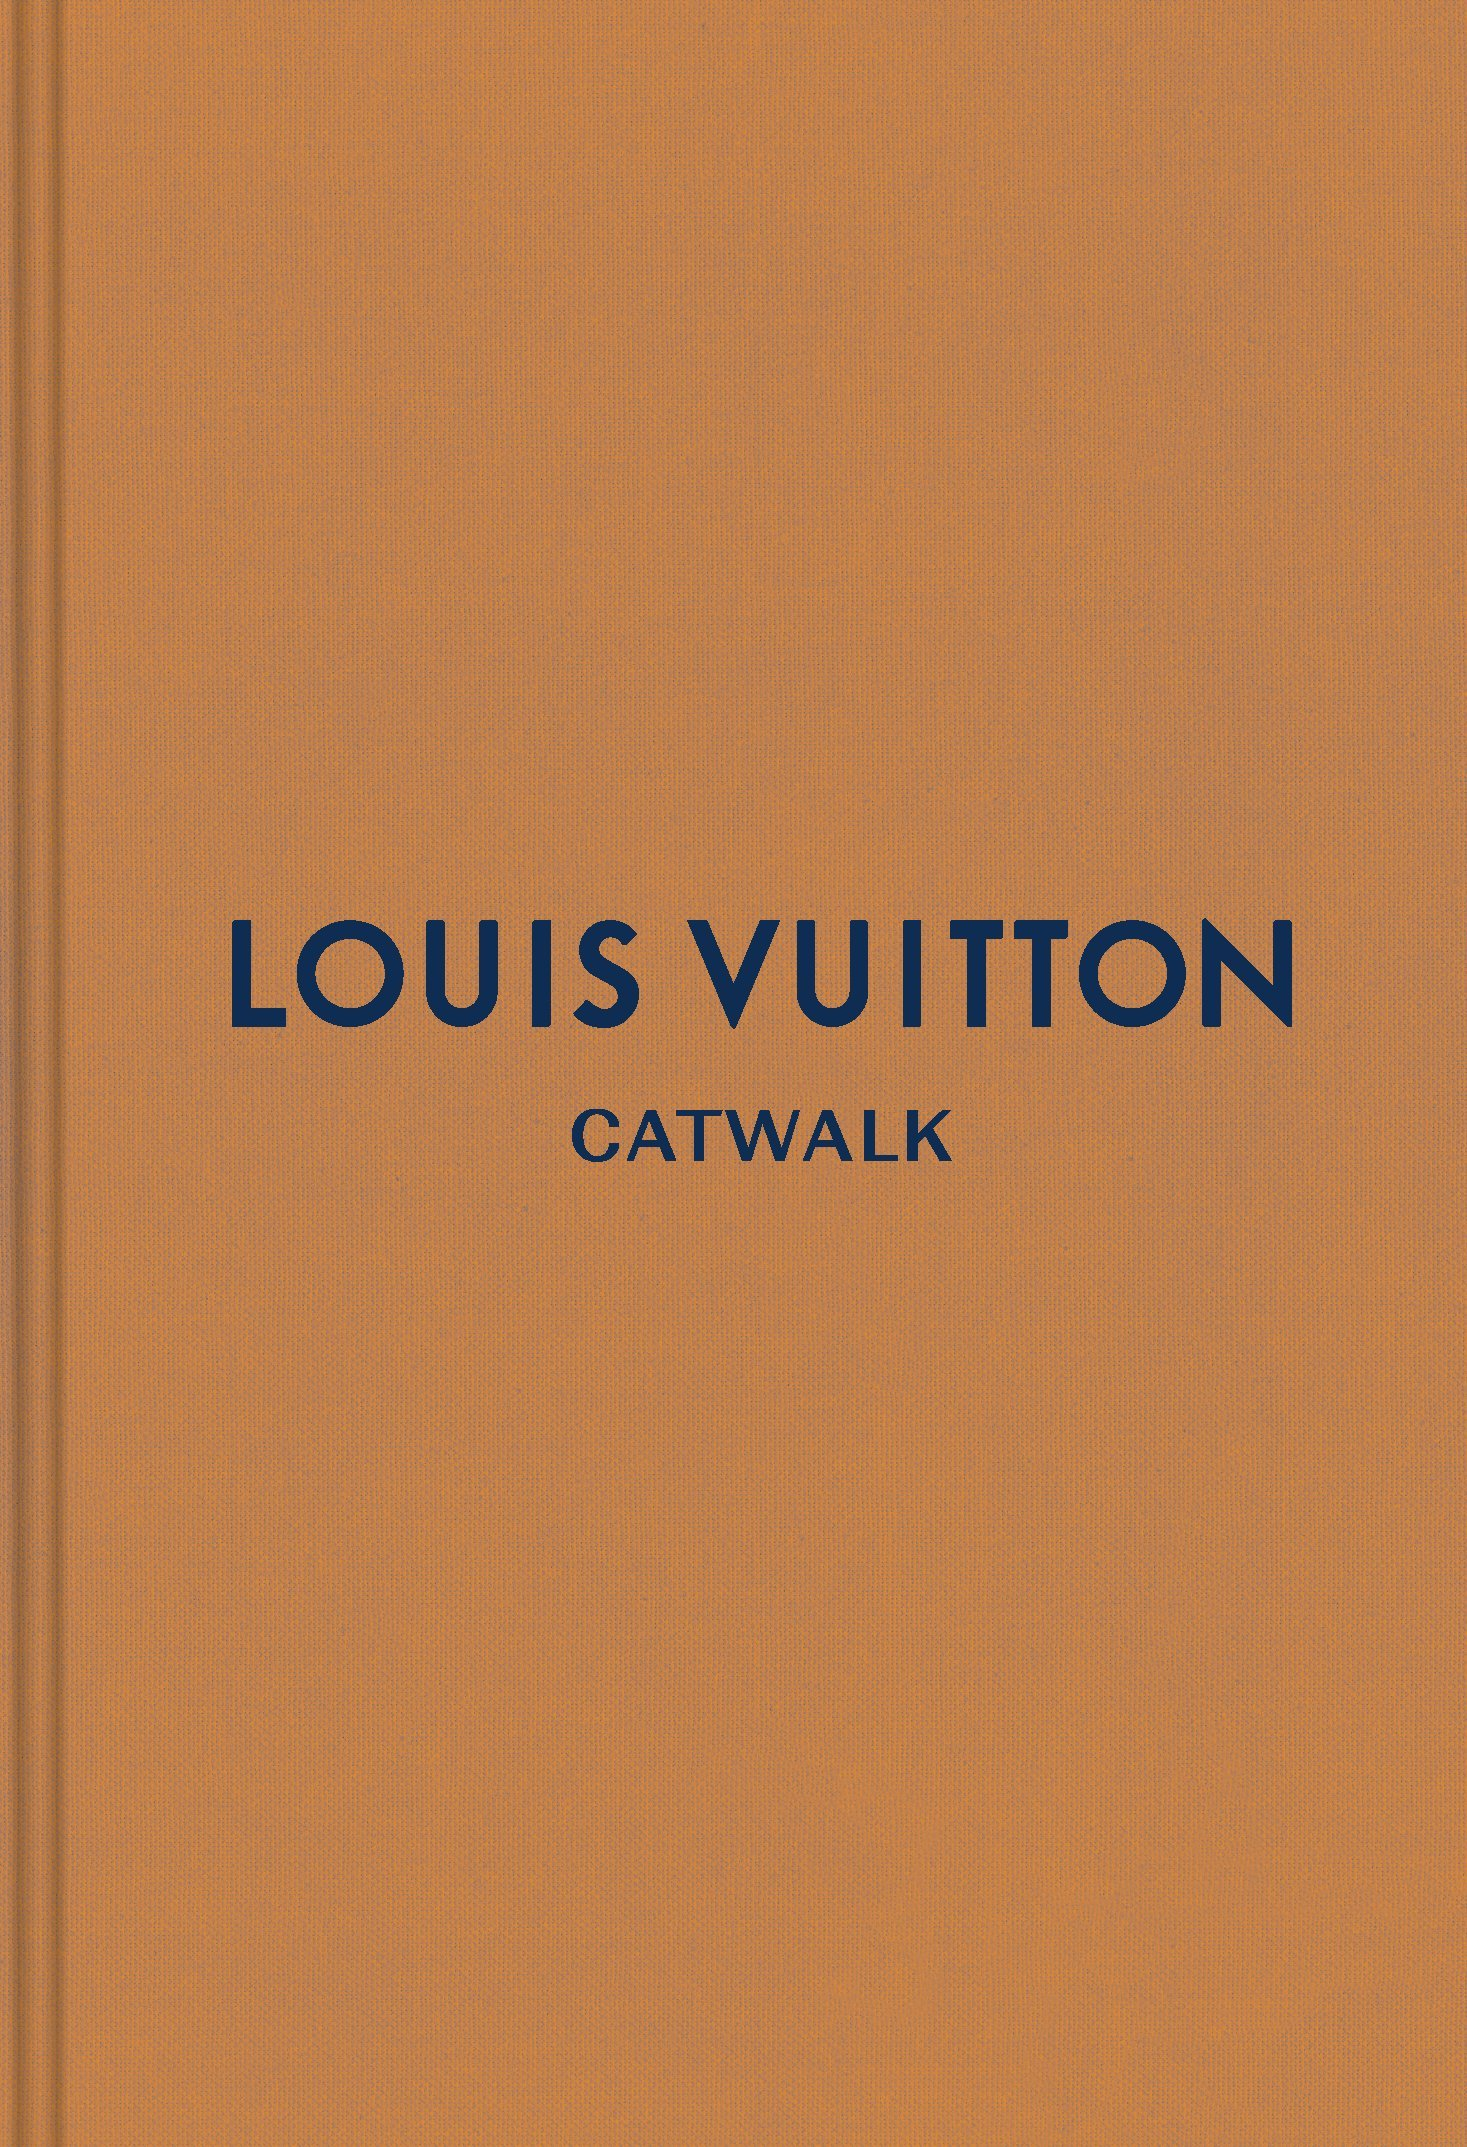 Louis Vuitton: The Complete Fashion Collections (Catwalk) by Yale University Press